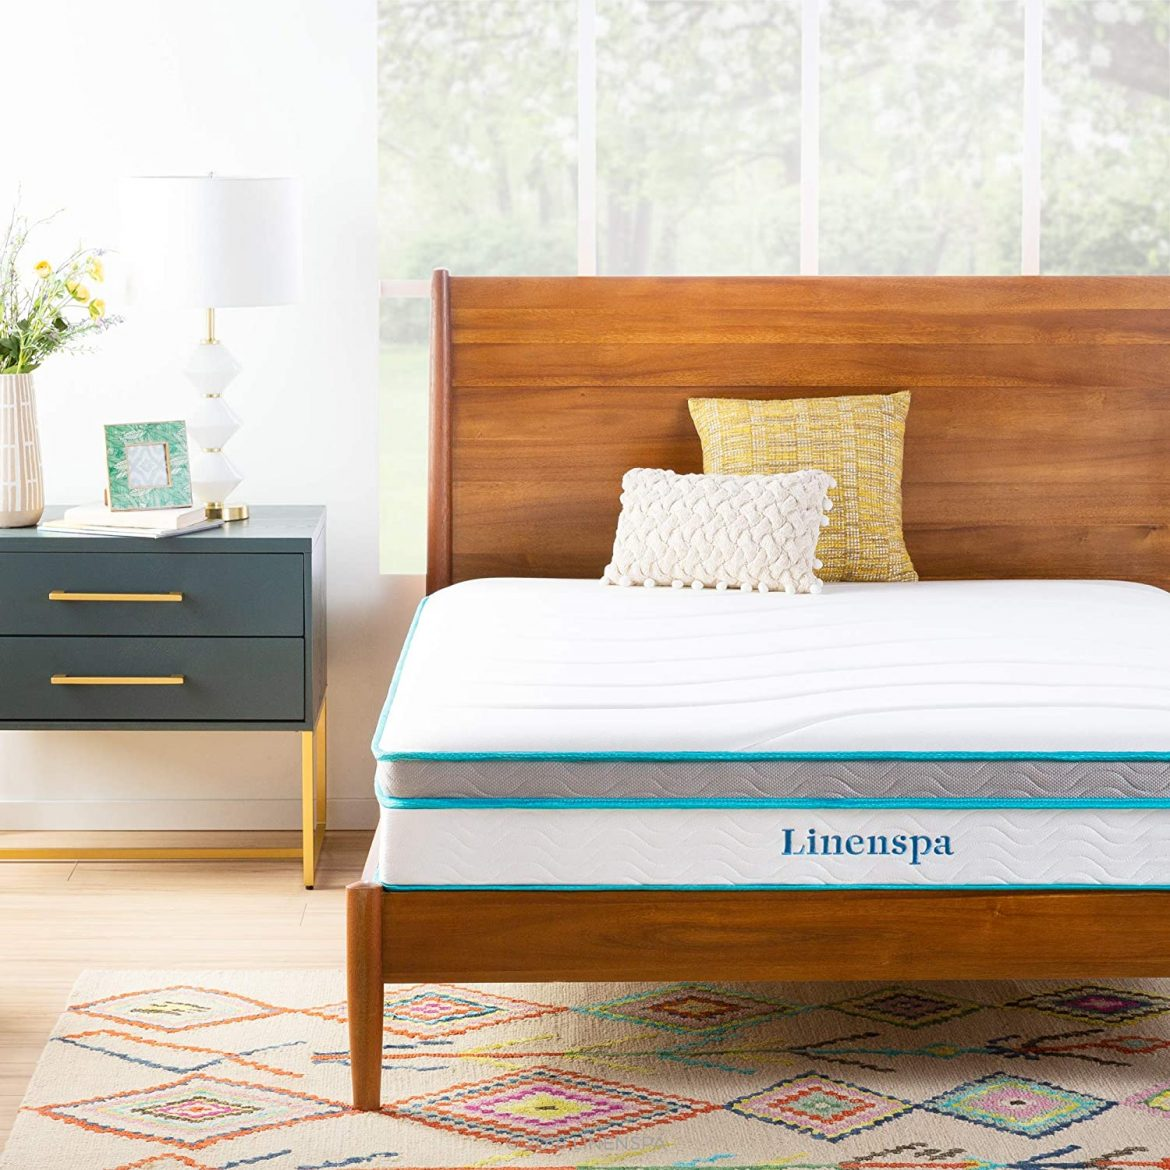 Linenspa Hybrid Mattress - Linenspa Hybrid Mattress Review